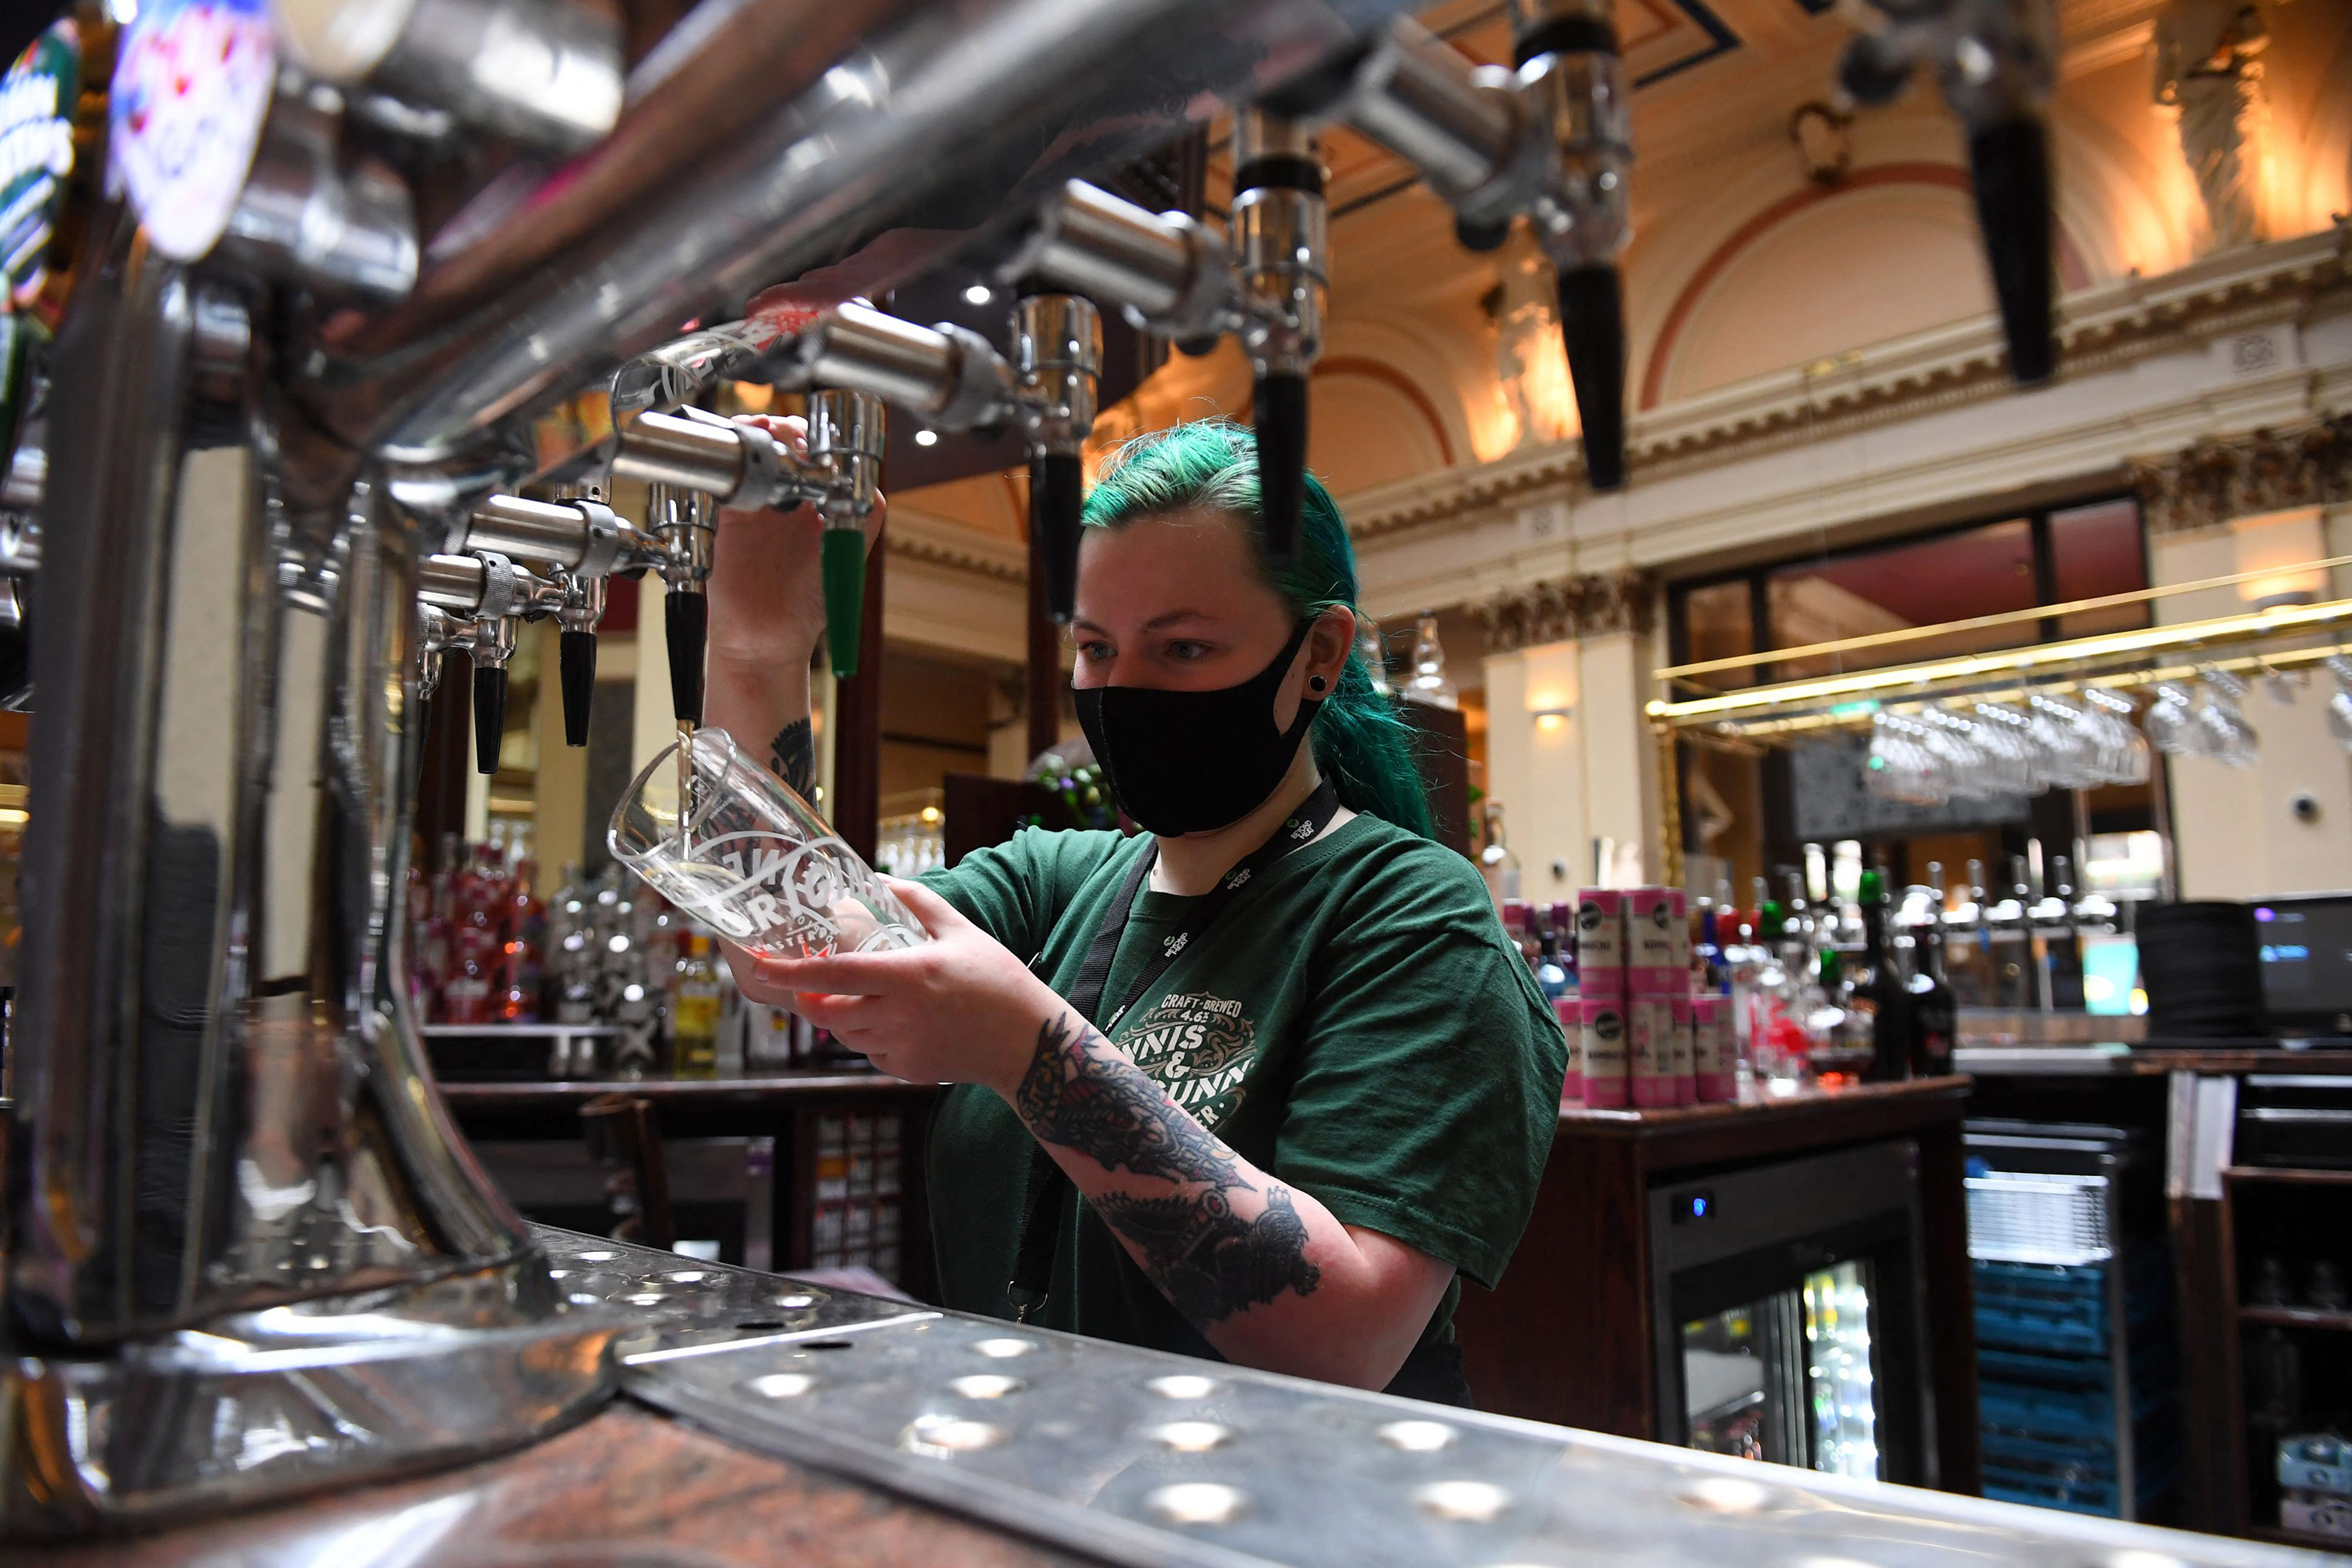 A bar worker prepares customers' drinks at a re-opened Wetherspoons pub in Glasgow on April 26, following the relaxing of some Covid-19 restrictions in Scotland.